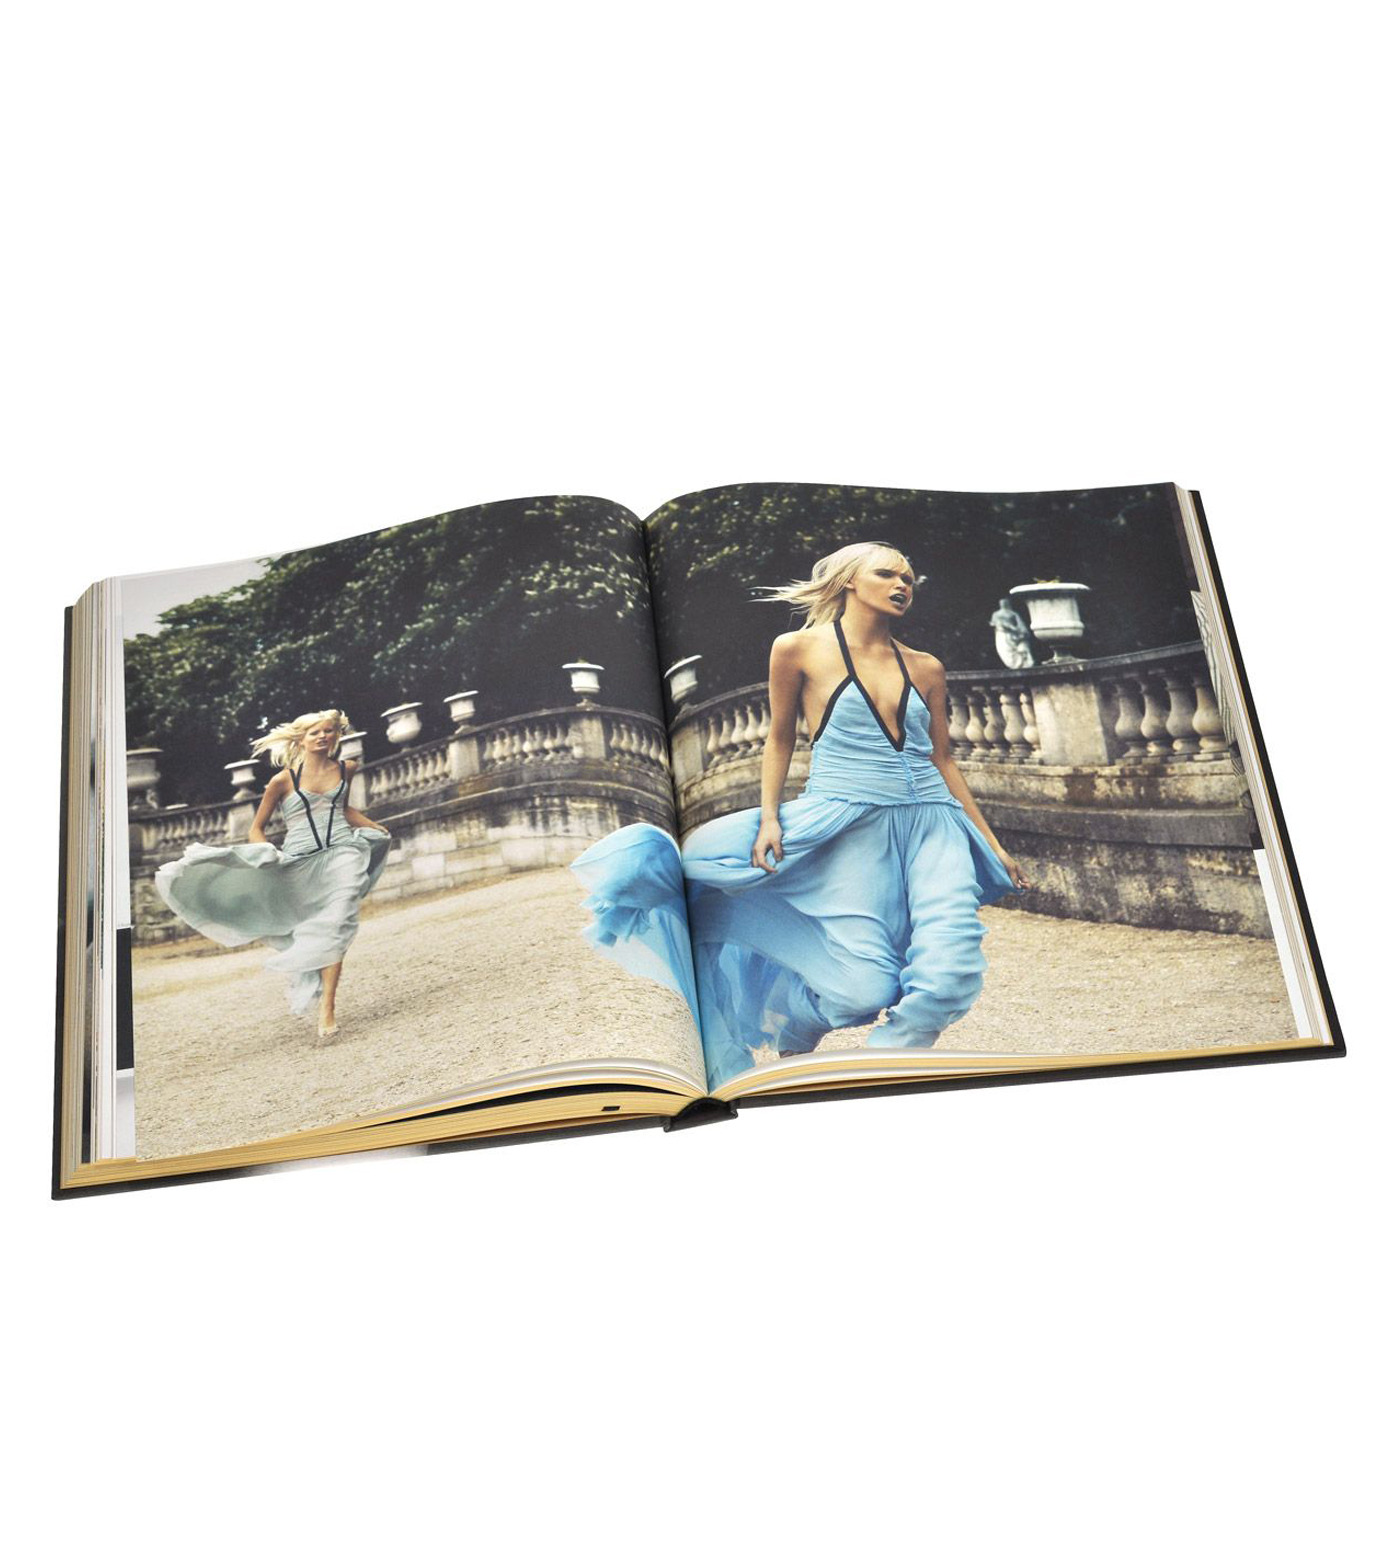 ArtBook(アートブック)のChloe: Six Decades of Style-GRAY(インテリア/OTHER-GOODS/interior/OTHER-GOODS)-8478-3852-3-11 拡大詳細画像2